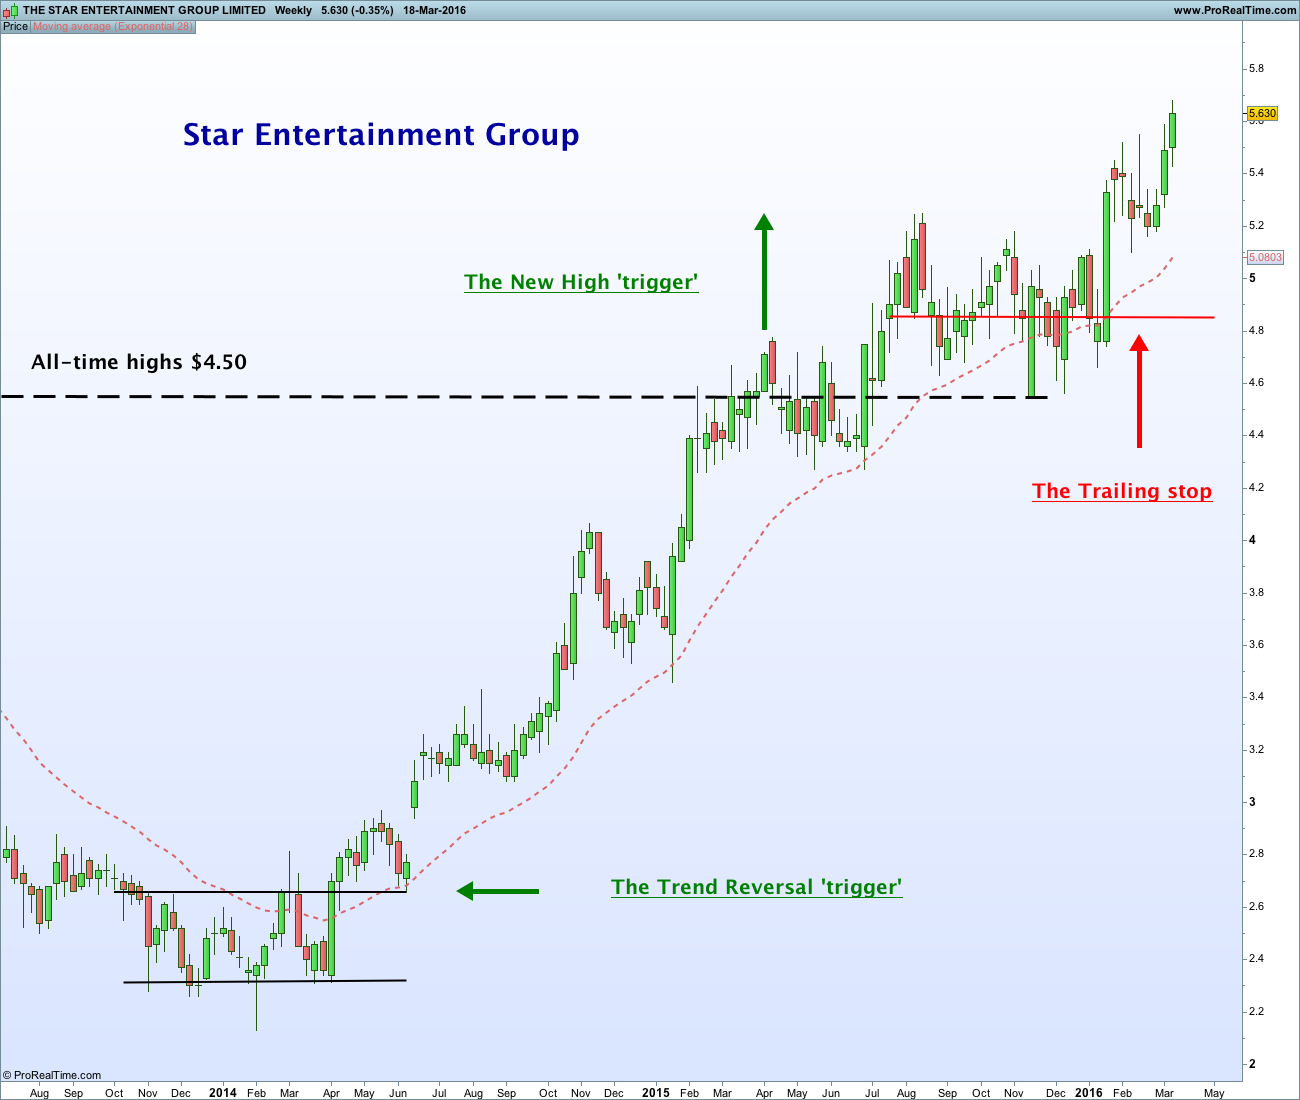 THE STAR ENTERTAINMENT GROUP LIMITED